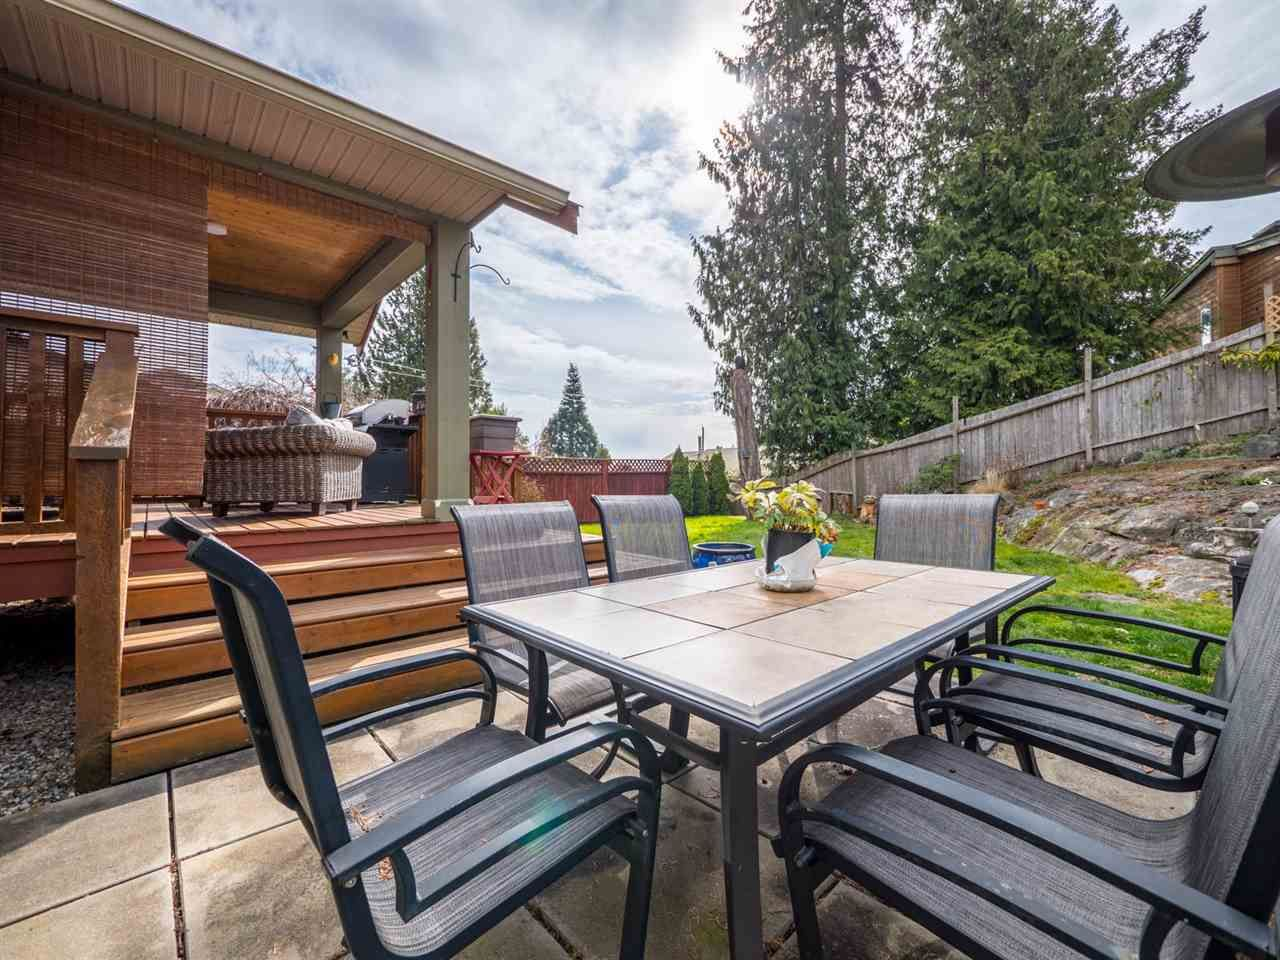 Photo 18: Photos: 6335 PICADILLY Place in Sechelt: Sechelt District House for sale (Sunshine Coast)  : MLS®# R2248834